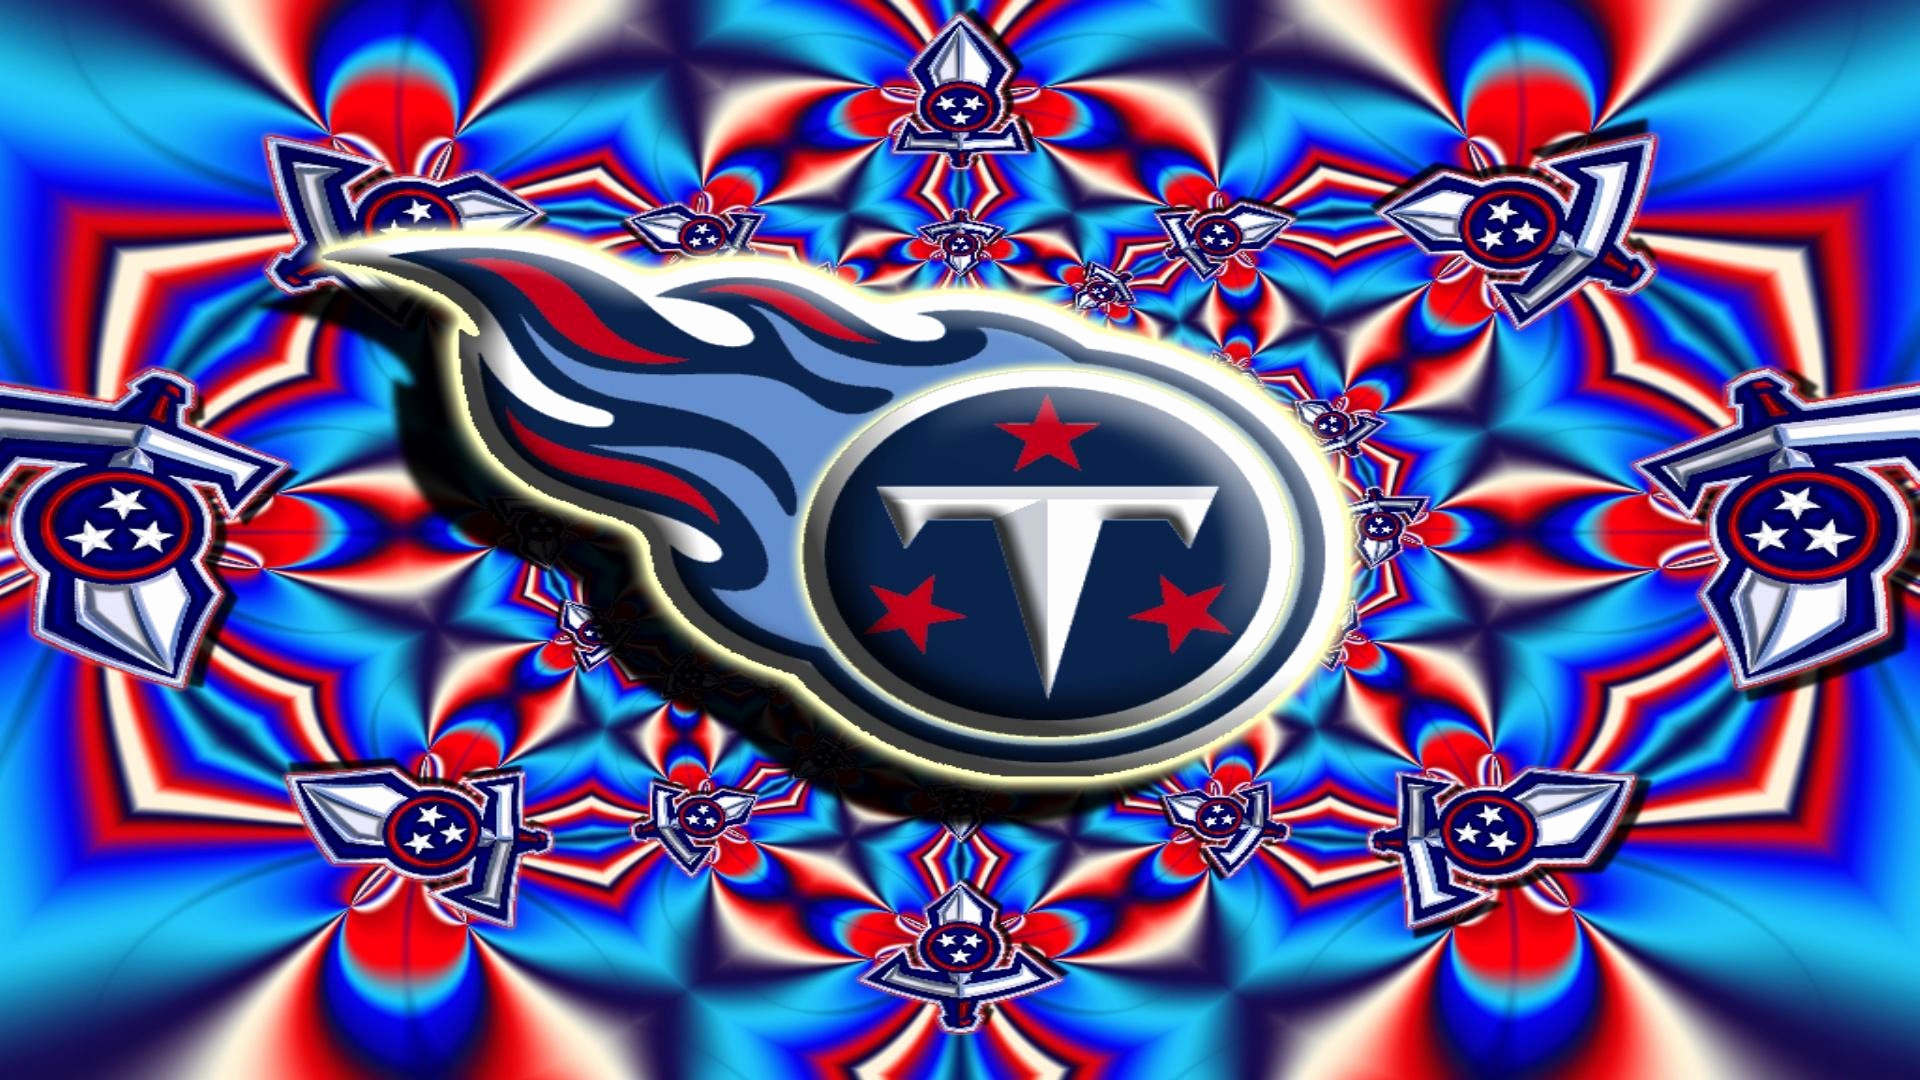 Res: 1920x1080, Tennessee Titans Wallpaper HD 6 - 1920 X 1080